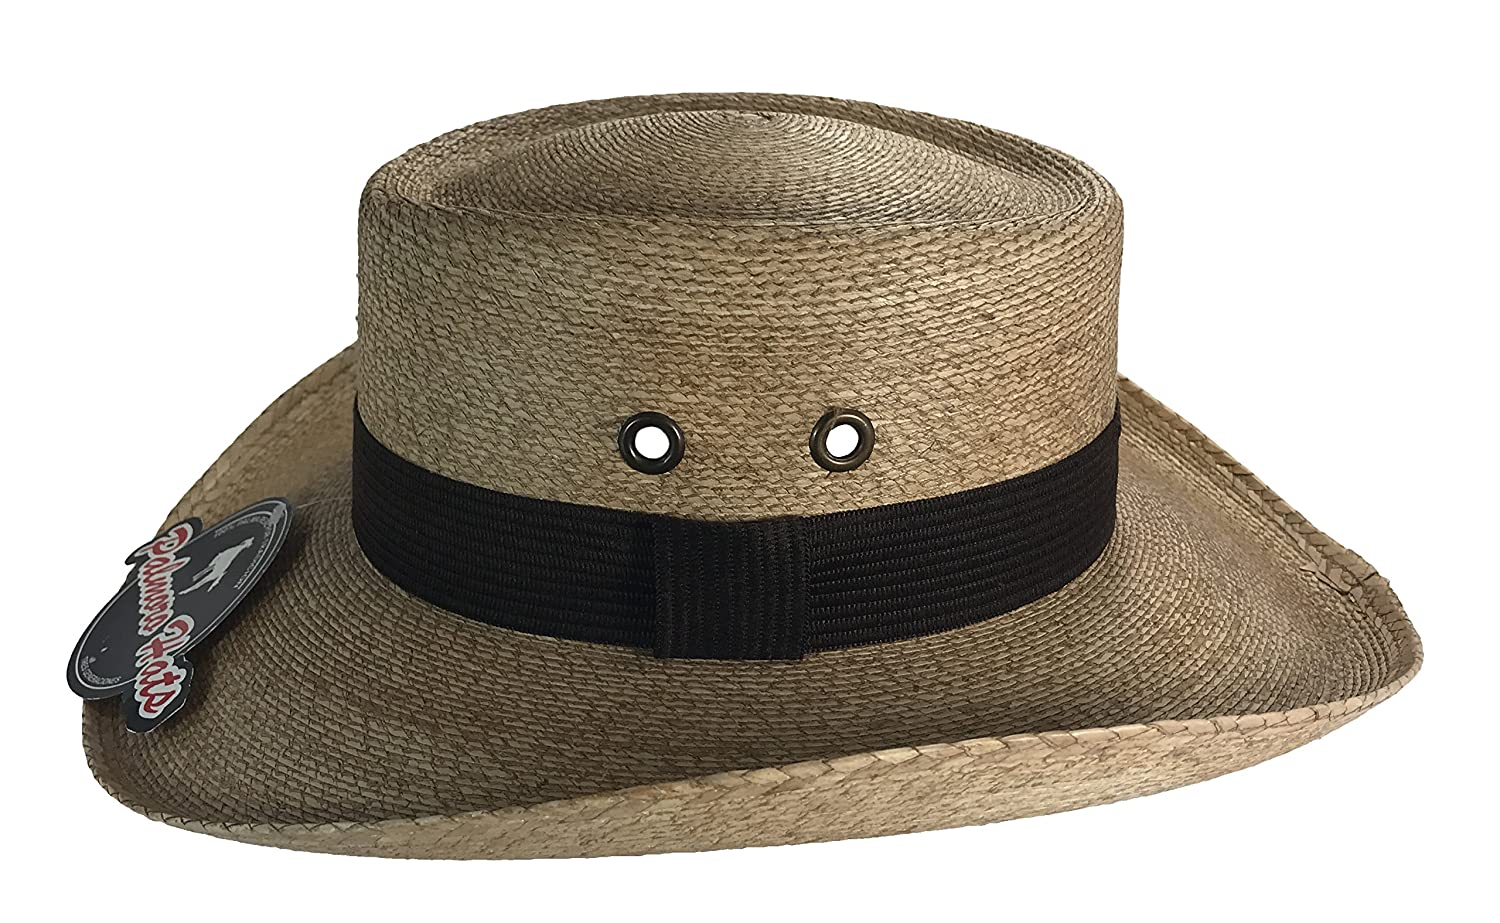 a22a53cc5a16e Palmoro The Original Golf Gambler Moreno Palm Straw Sun Hat at Amazon Men s  Clothing store